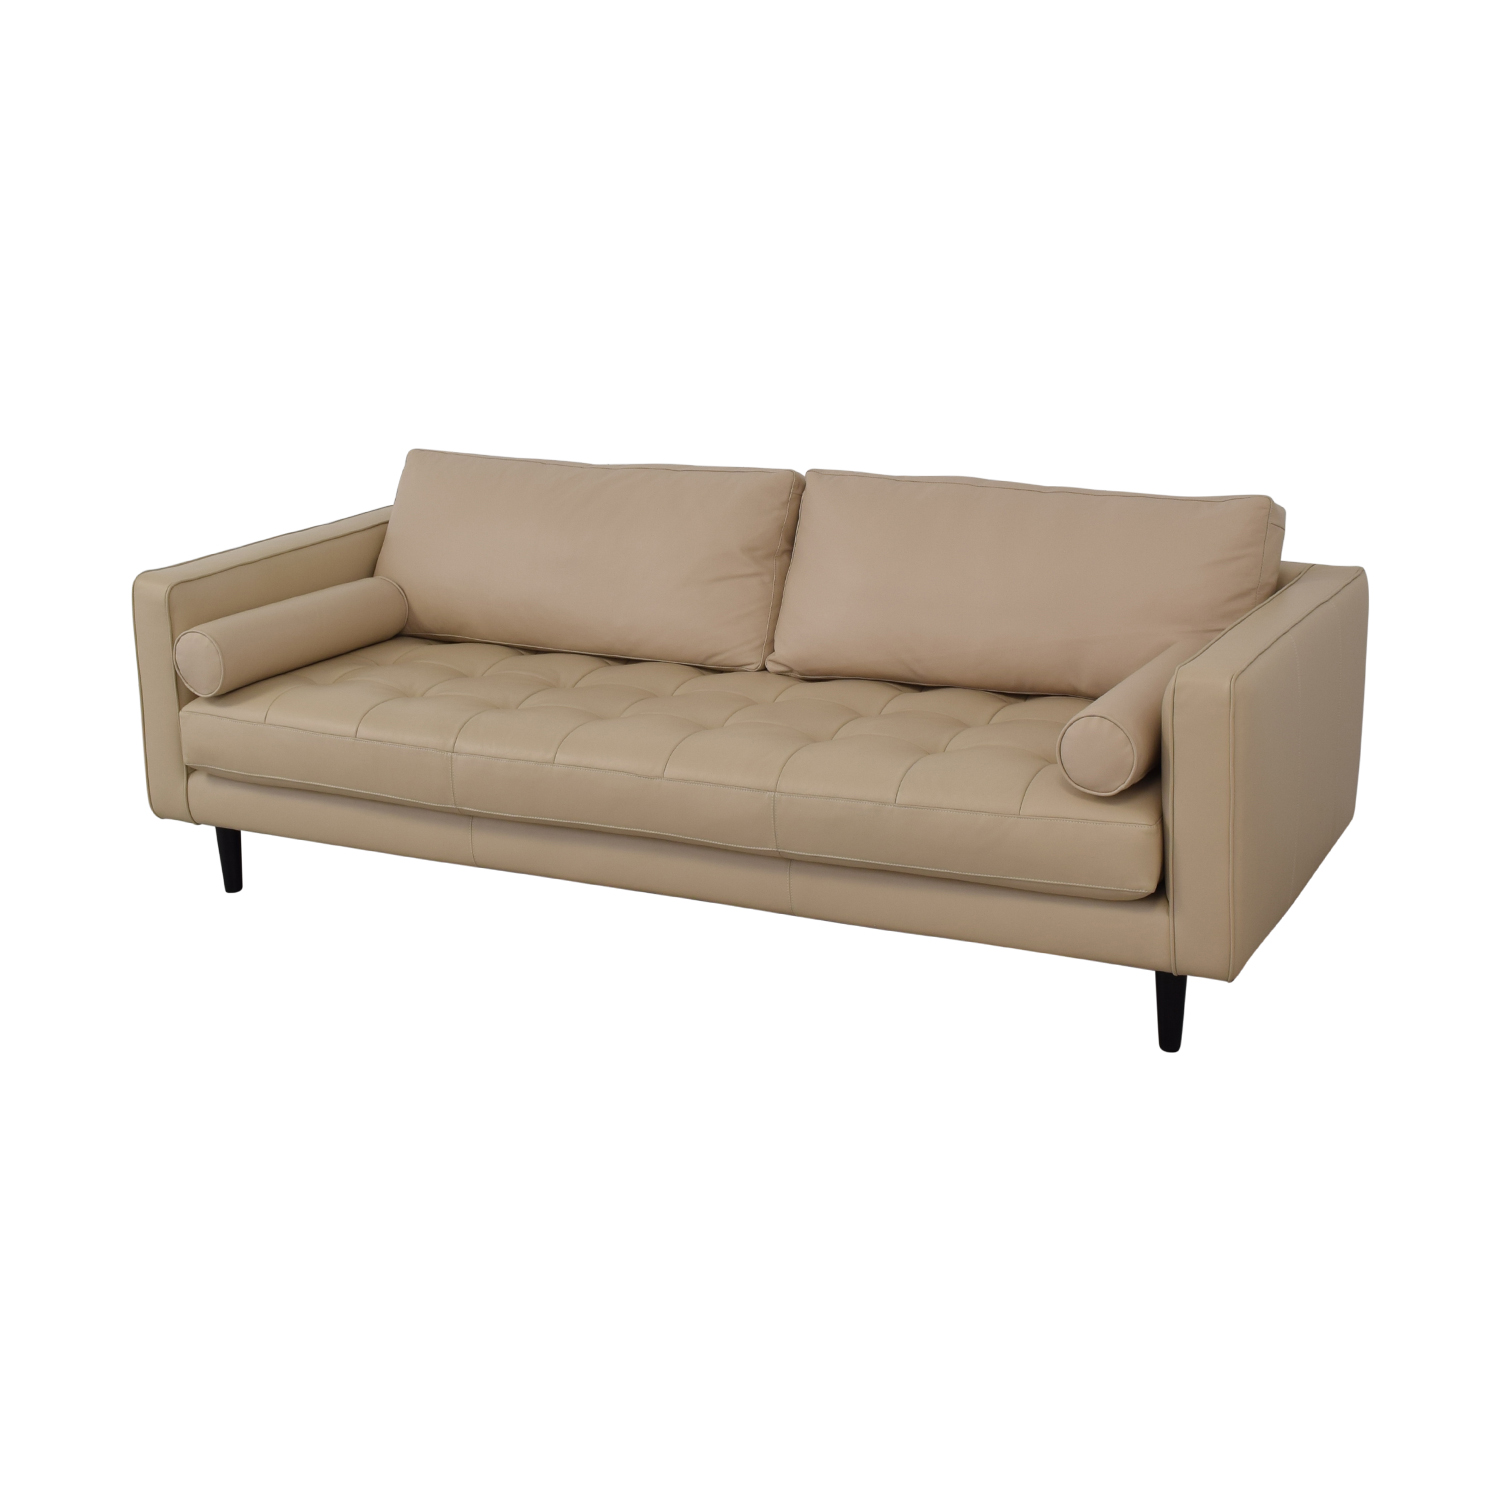 Rove Concepts Rove Concepts Sandro Luca Sofa (Florence Nude Leather) coupon